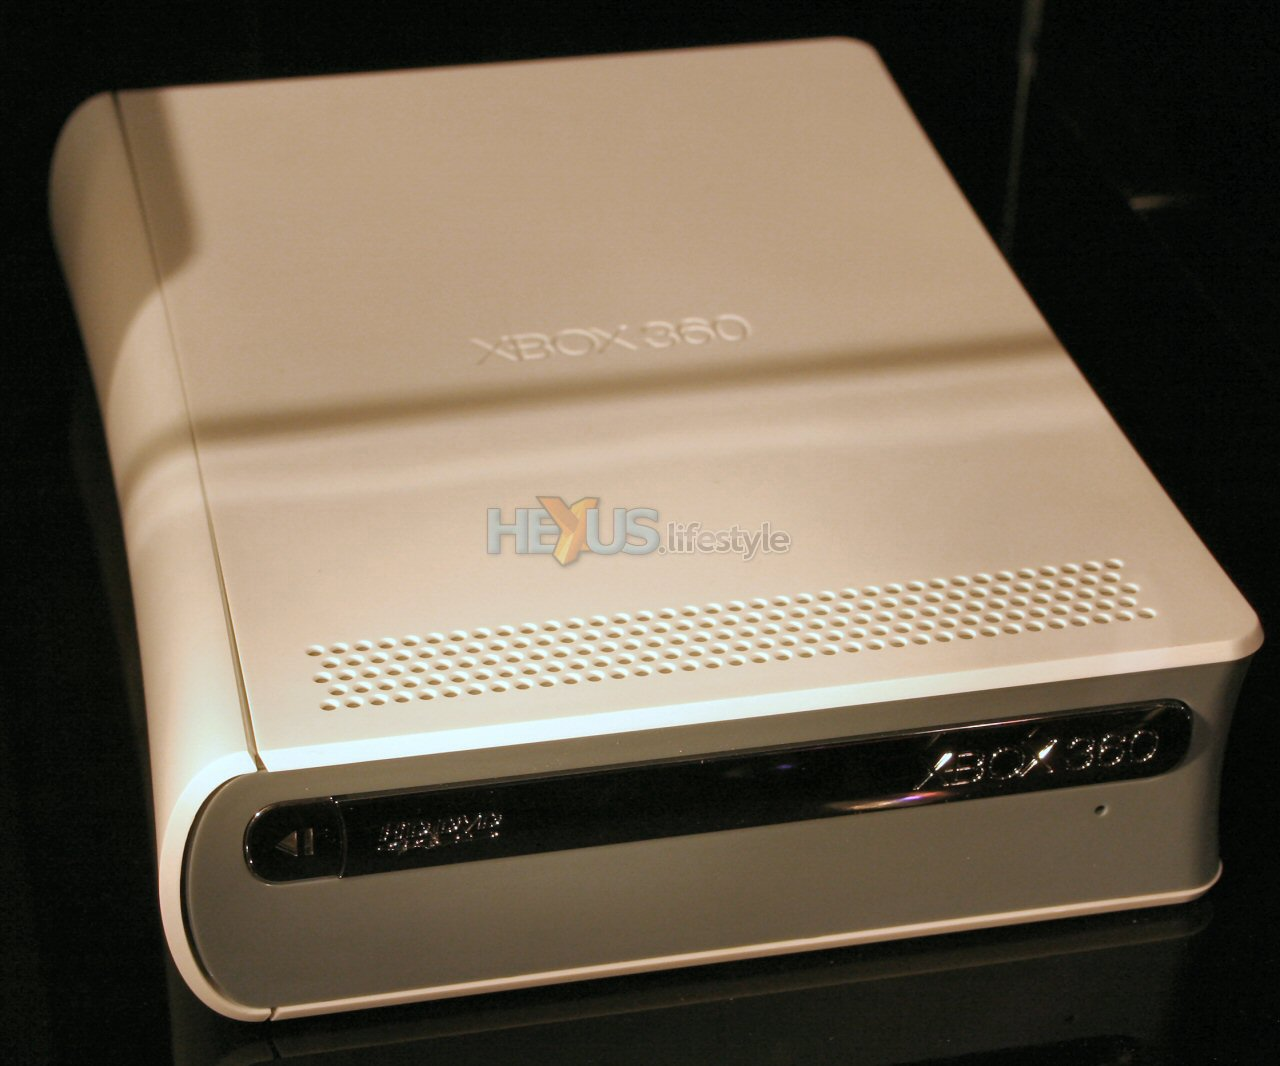 X06 The Features Of The Xbox 360 HD DVD Player Xbox 360 Press Release